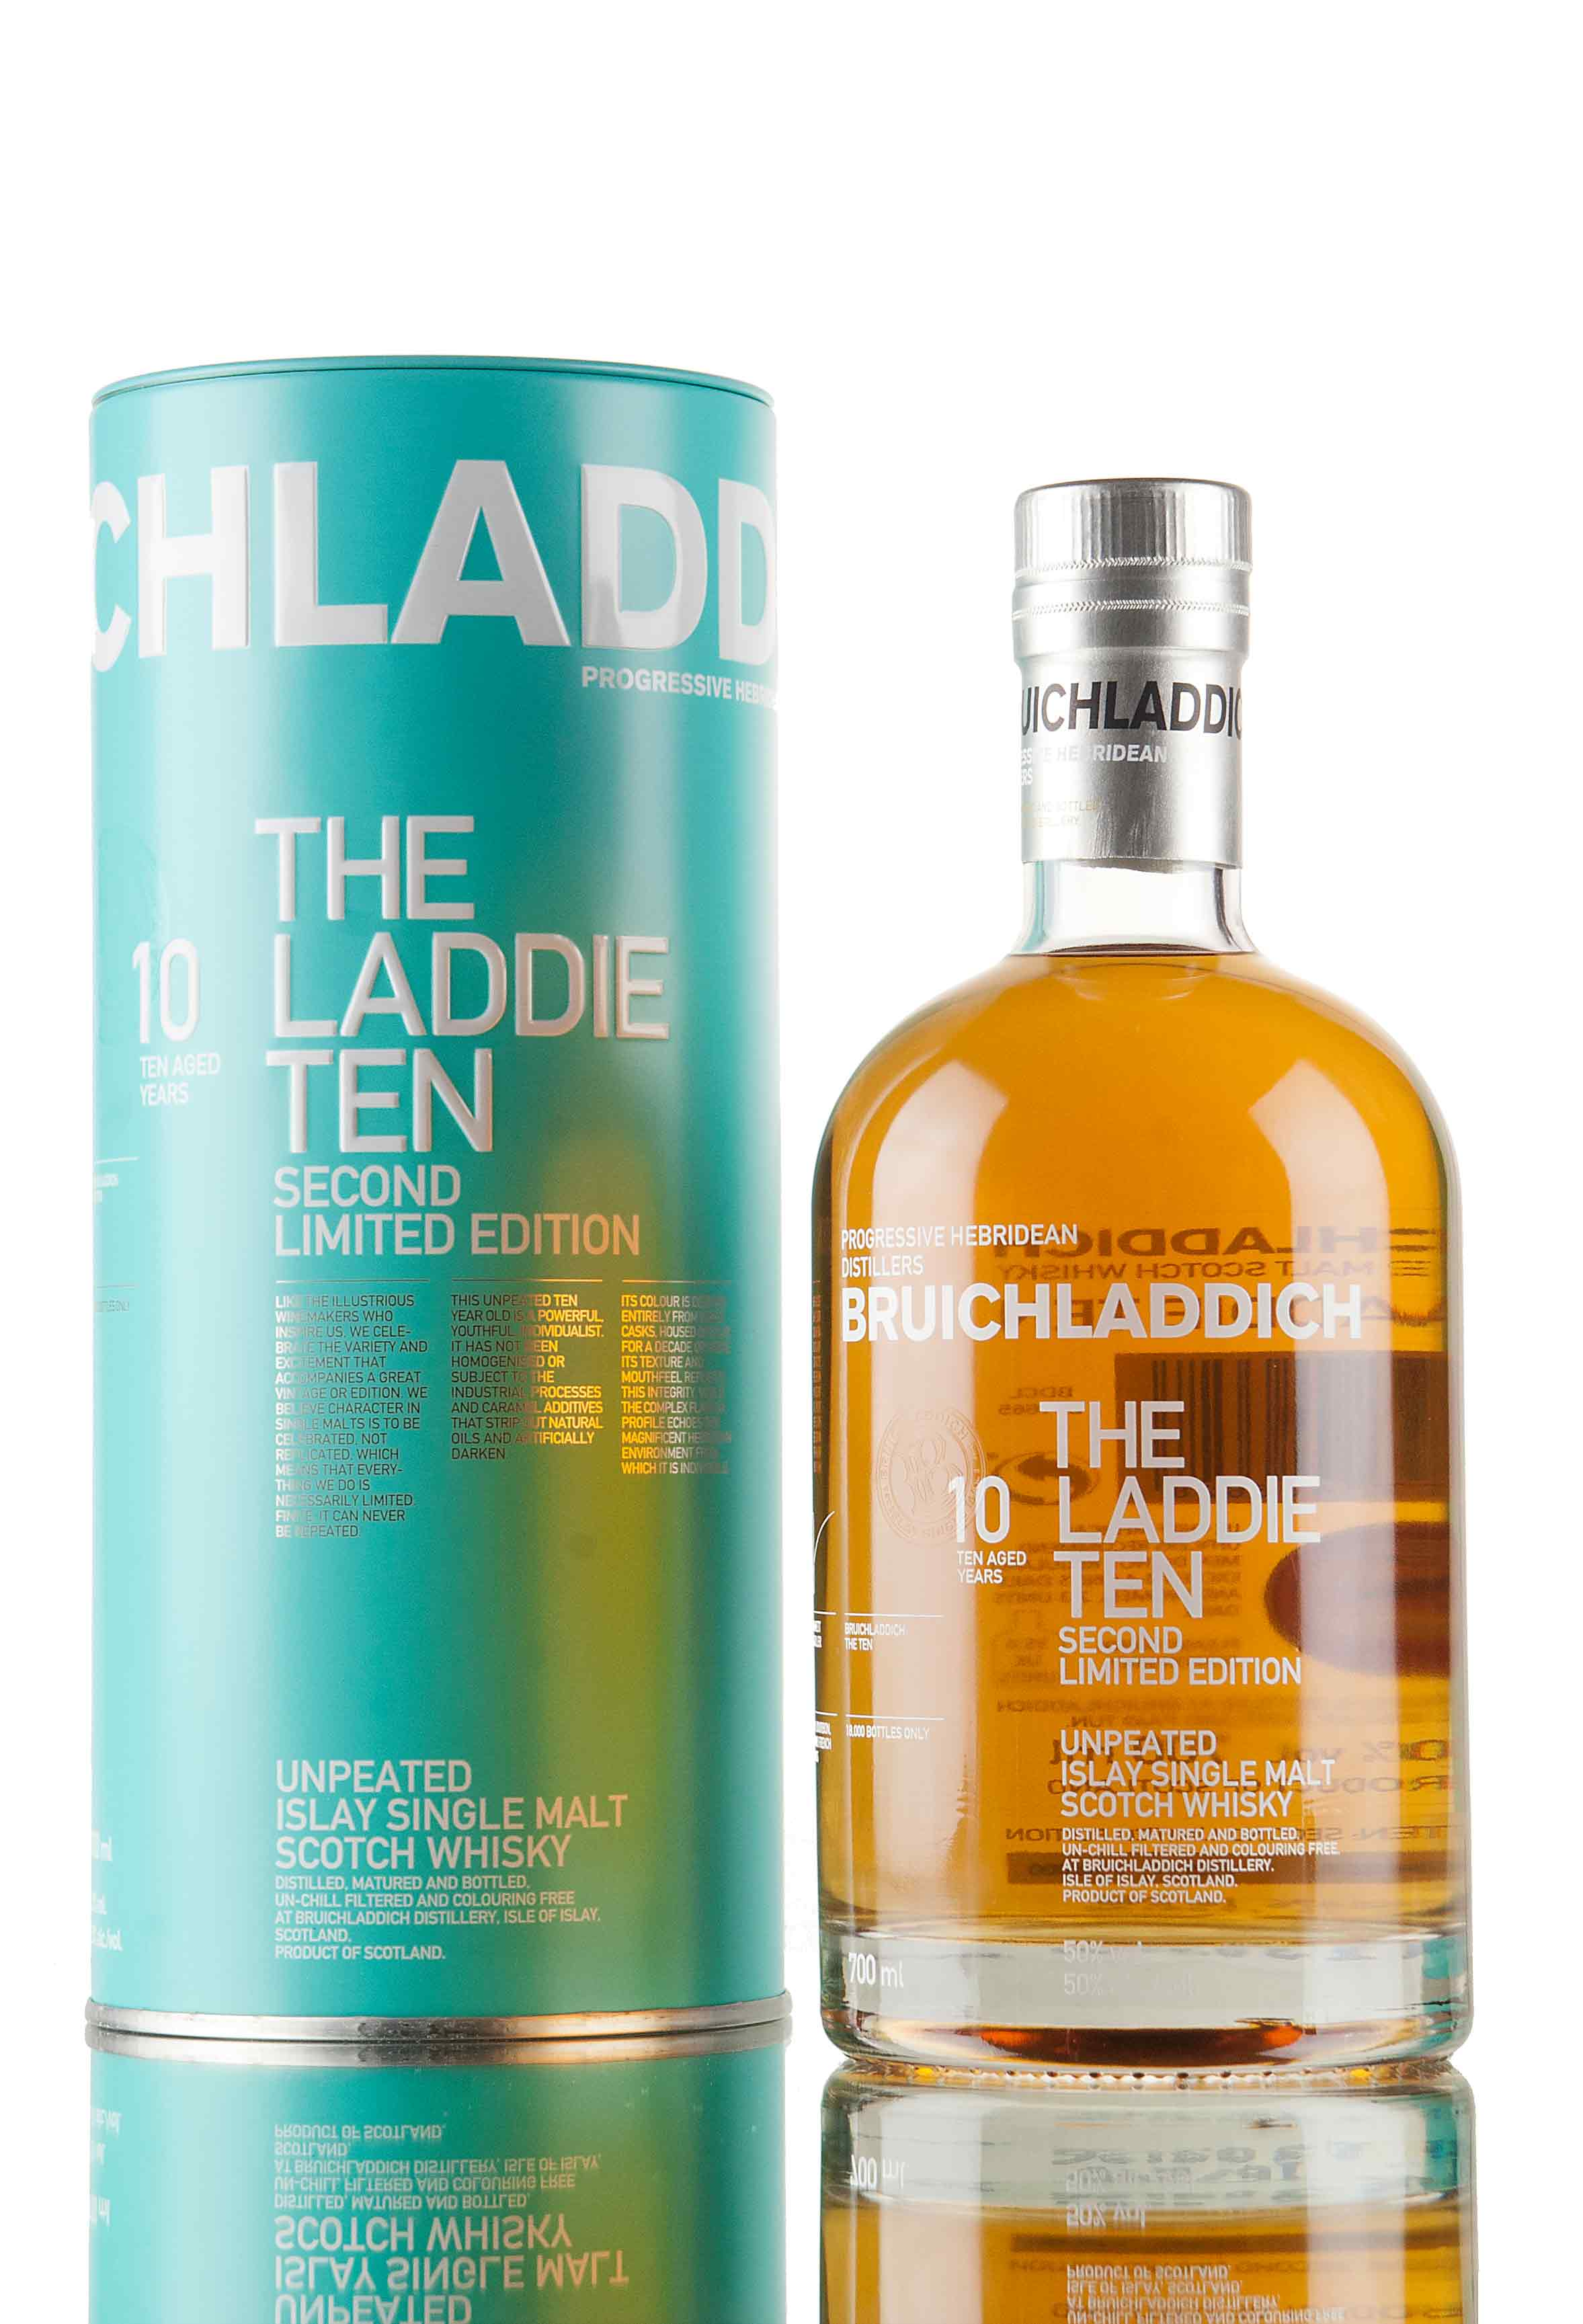 Bruichladdich 10 Year Old - The Laddie Ten 2nd Edition